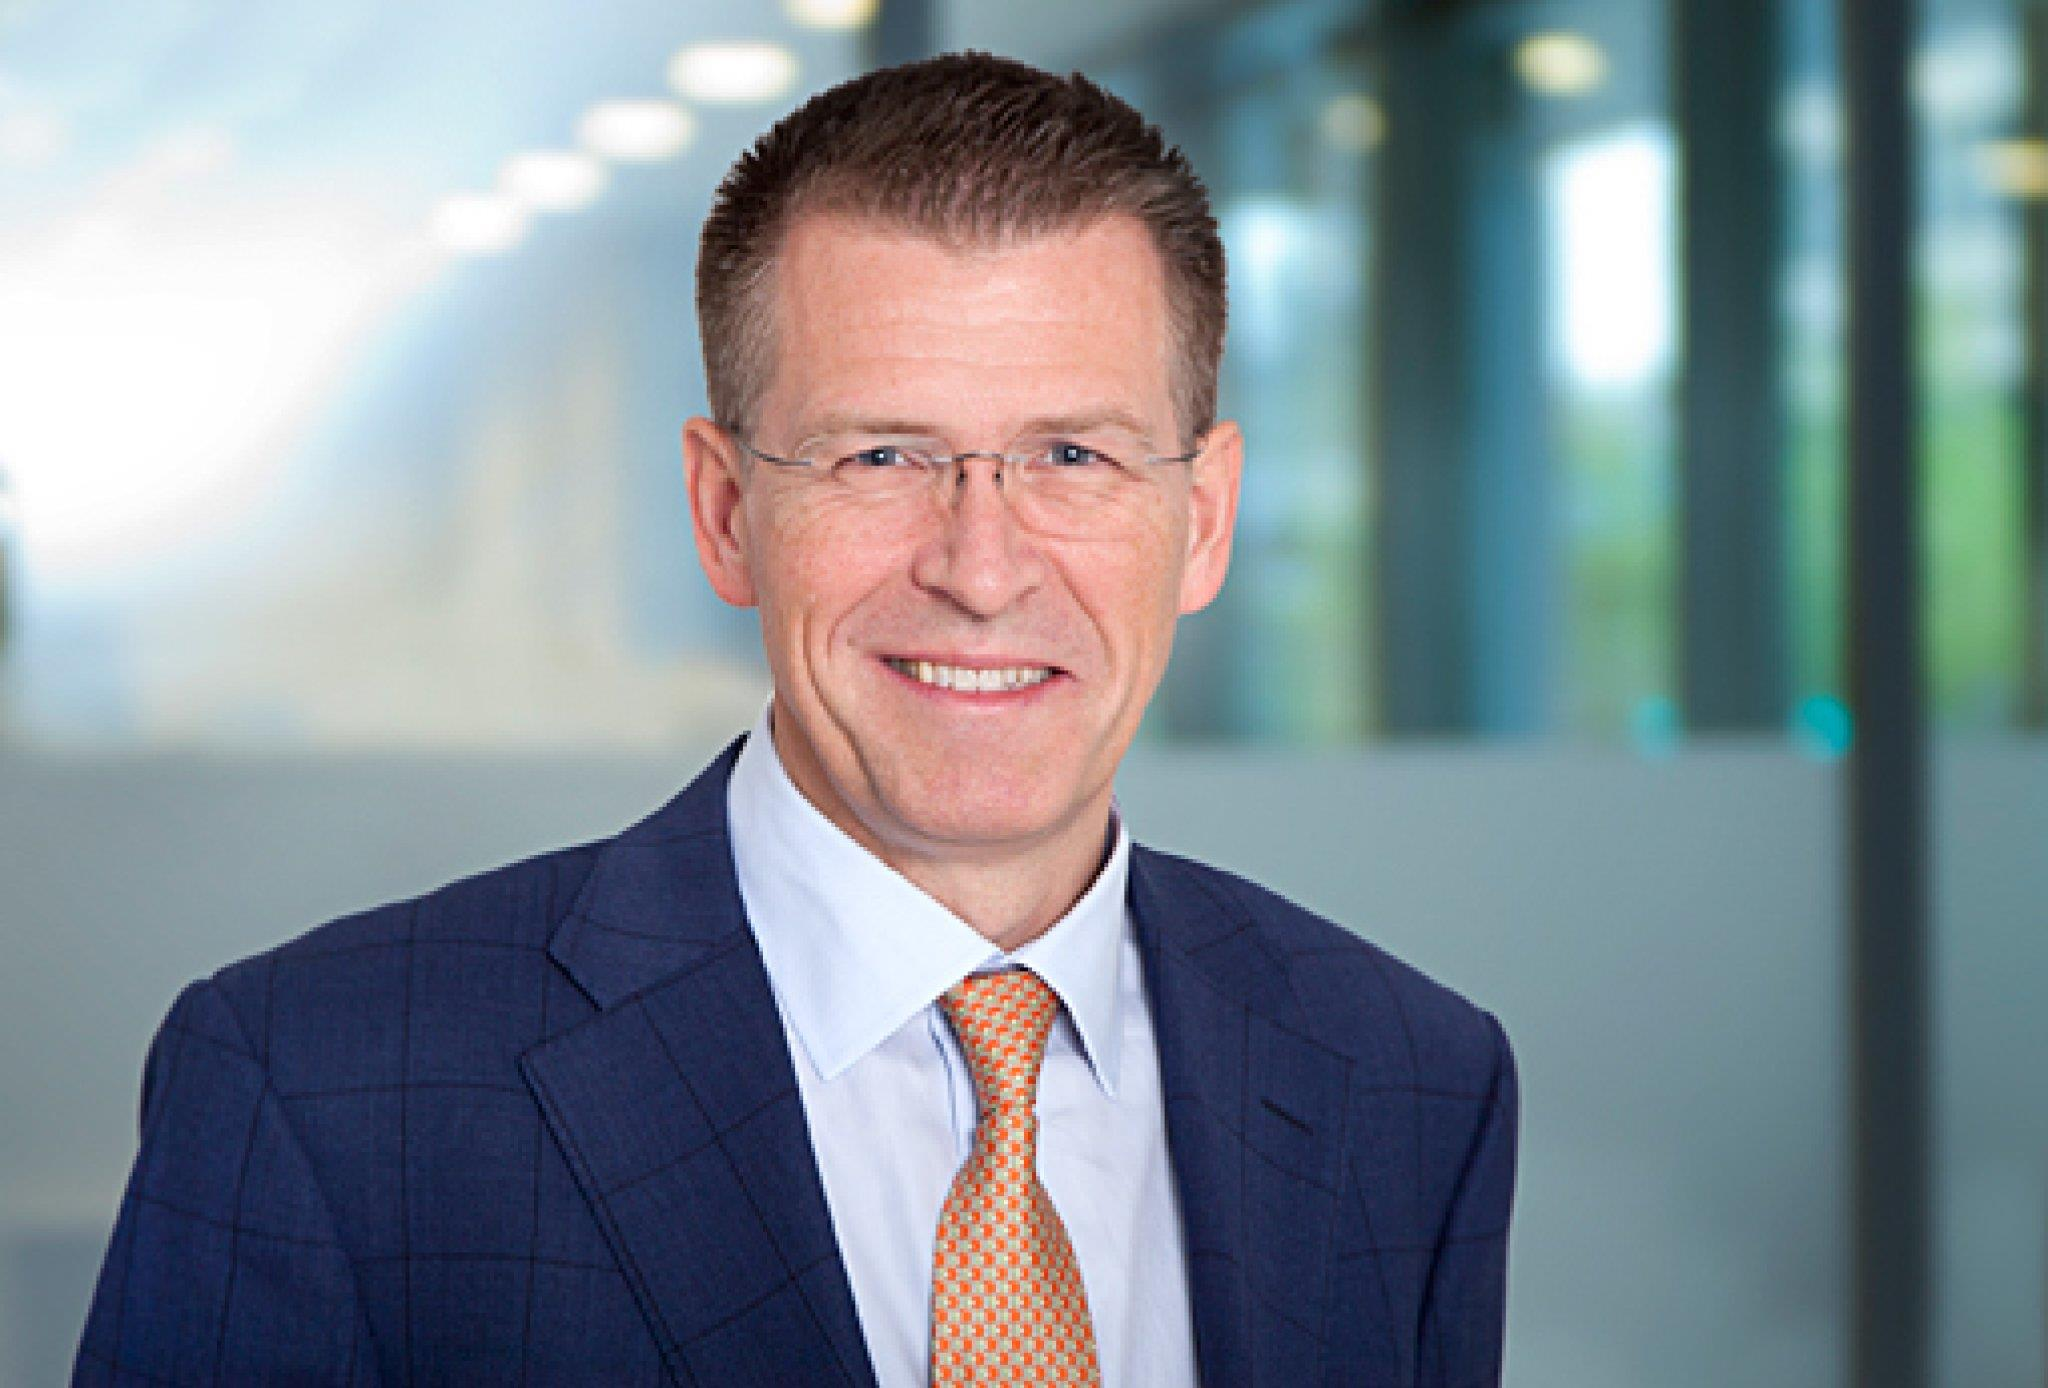 Ivar Myklebust, ceo of Höegh Autoliners